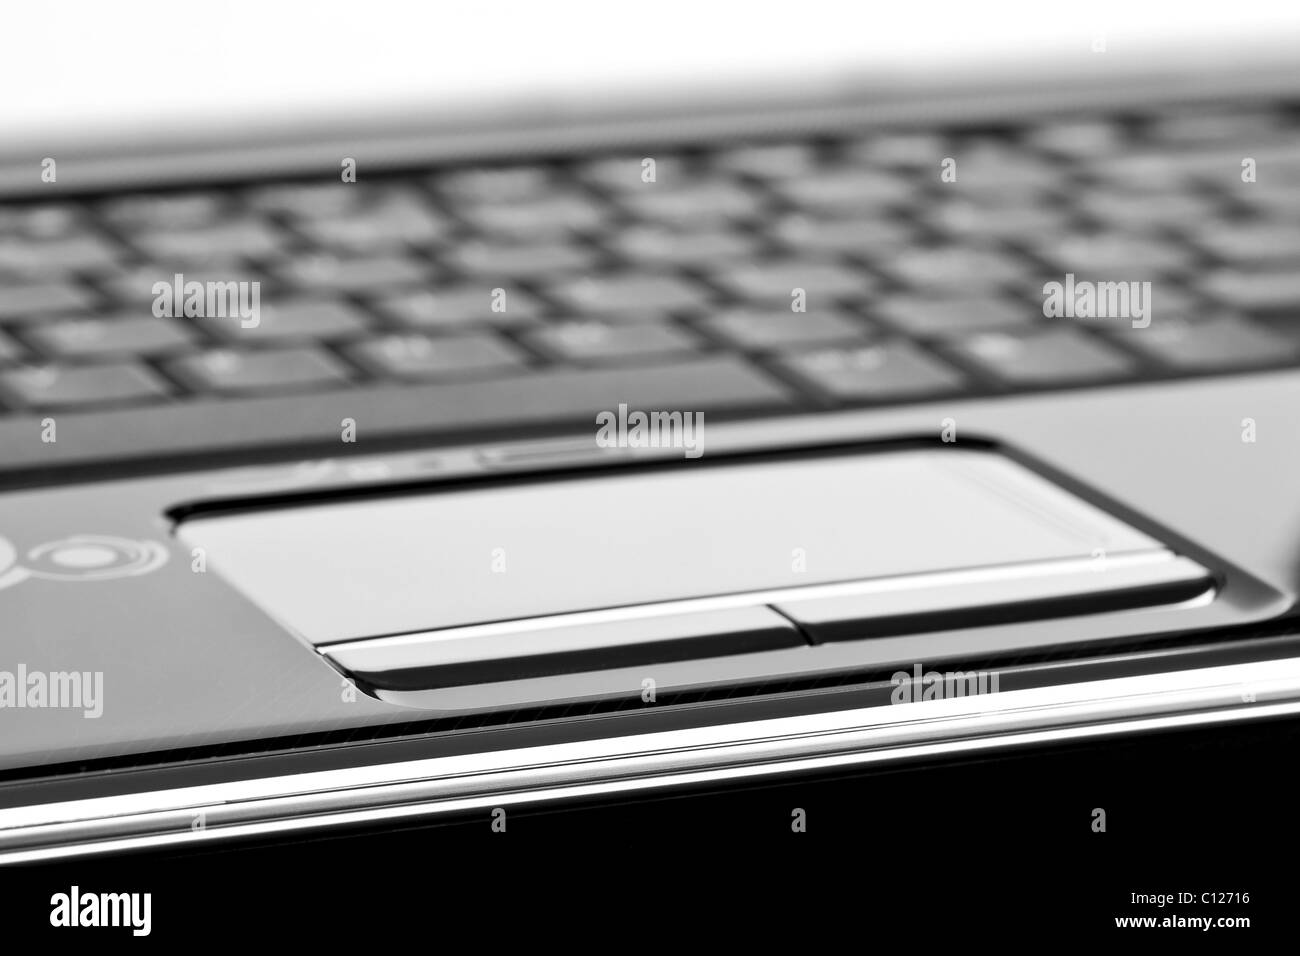 Touchpad of modern laptop computer - Stock Image